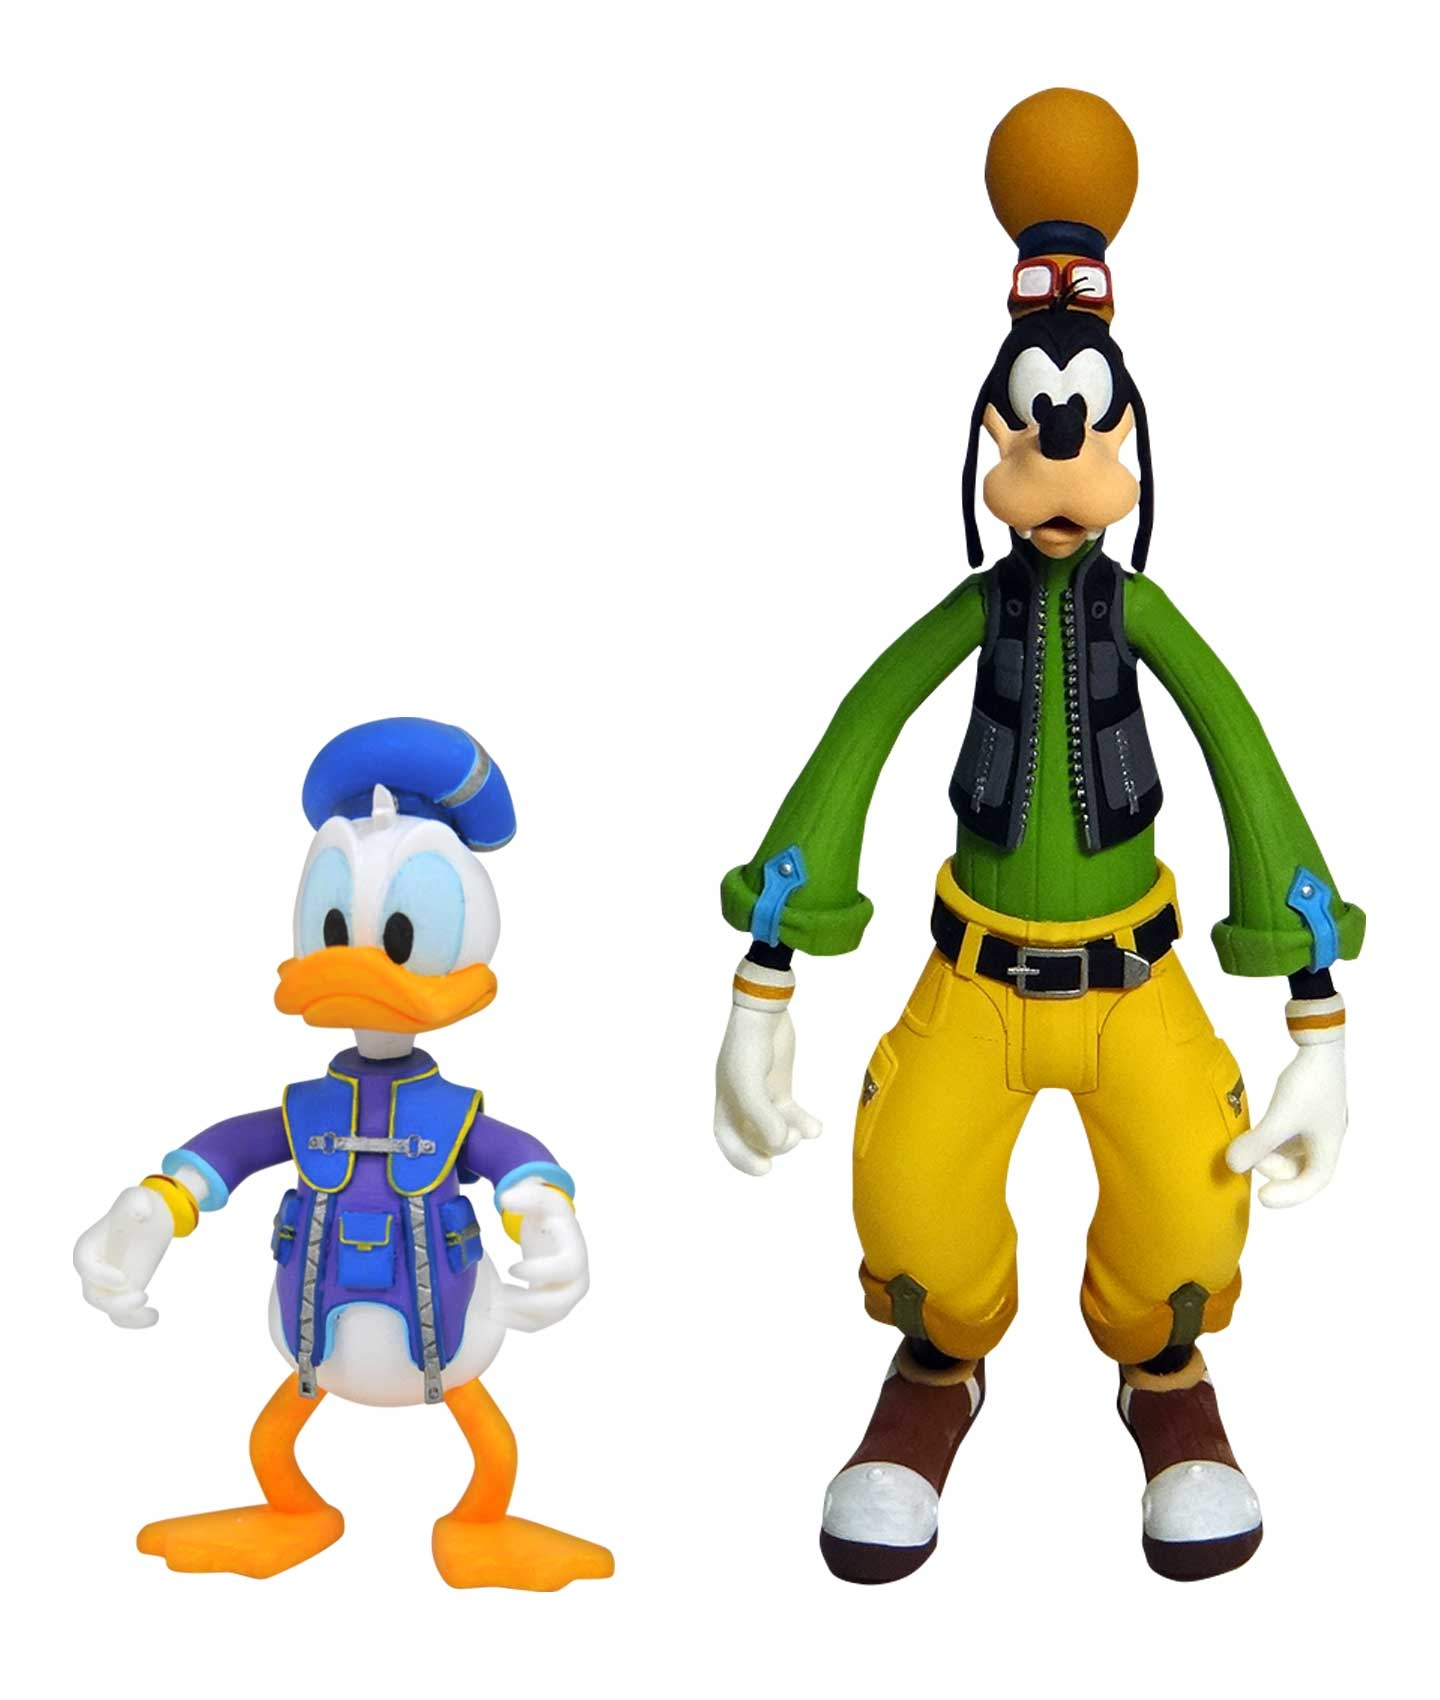 KINGDOM HEARTS 3 SELECT GOOFY & DONALD AF